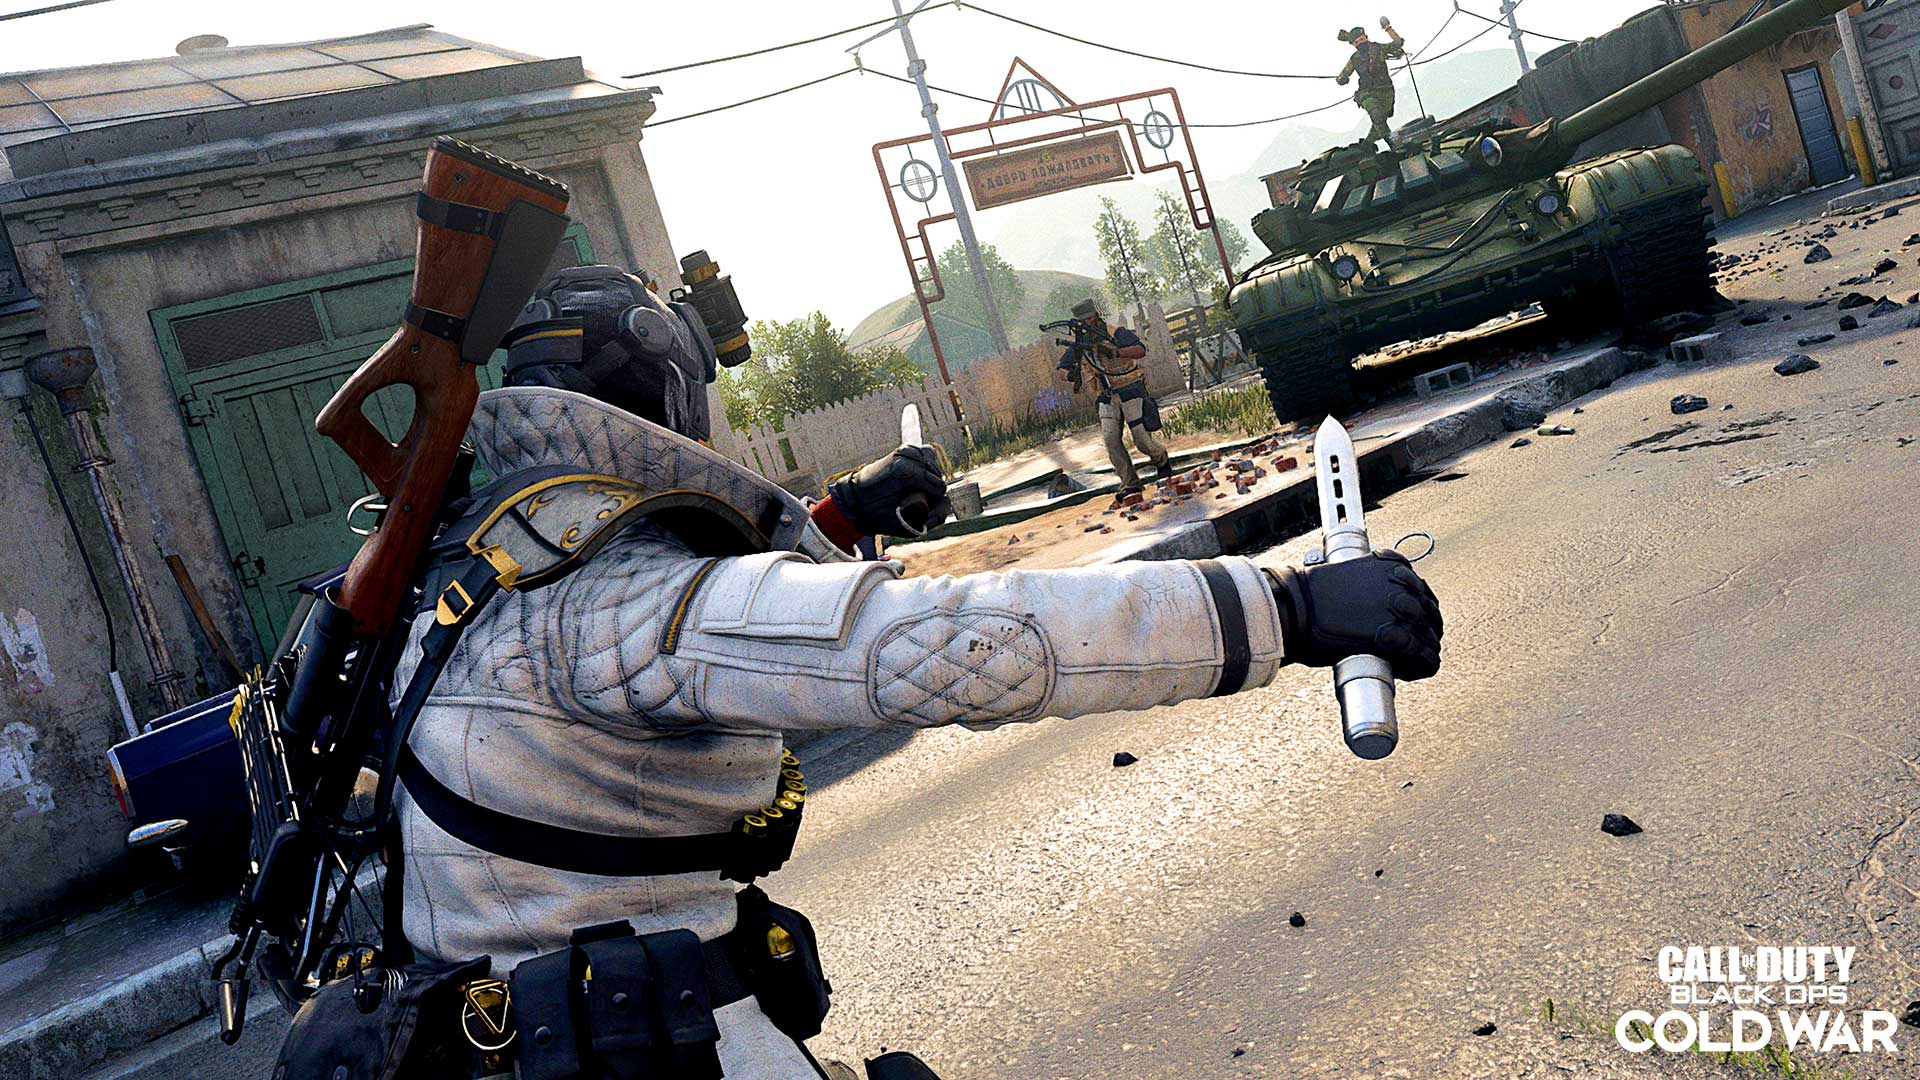 black ops cold war, cd key, cdkey, series x, ps5, ps4, xbox one, xbox, playstation, price comparison, best price, free games, free dlc, free console games, price comparison, best price, game deal, game deals, video game price comparison, game code, game key, buy key code, buy game key, price compare, best game deals, best game deal, cdkey deal, cdkey buy, cold wars key, cd key cod, game code price, download game, free games, preview, release date, where to buy, best price buy, which edition should i buy, playstation plus, game deal, game deals, playstation now, video game price comparison, game code, free steam games, game key, free steam key, steamkey, buy key code, buy game key, price compare, xbox ultimate pass, game pass ultimate, xbox game pass free games, best game deals, best game deal, cdkey deal, cdkey buy, game code price, download game, free games, preview, release date, monthly free games, where to buy, best price buy,